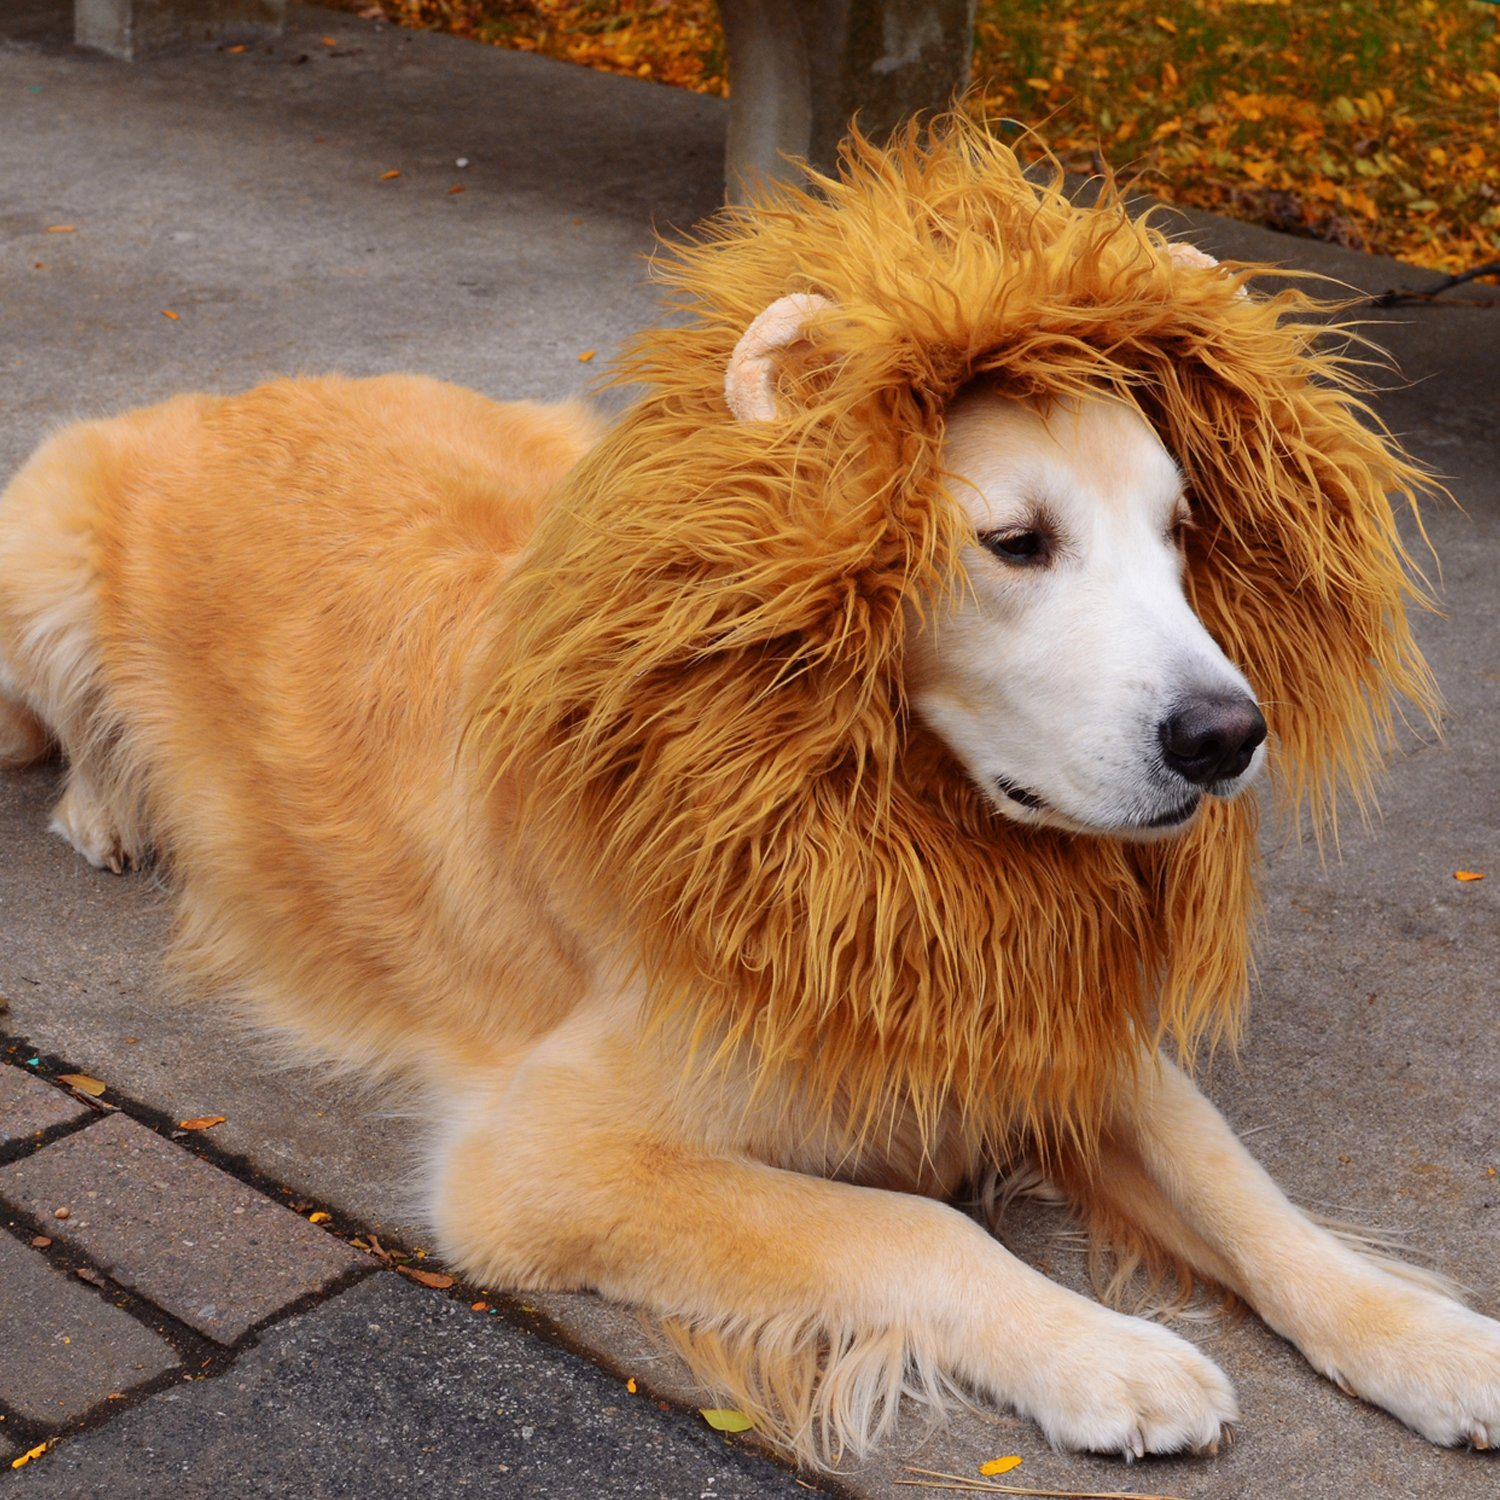 ENJOY PET Lion Mane for Dog, Dog Costume Lion Wig with Ears and Tail for Medium to Large Dogs, Adjustable Washable Dog Fancy Dress Halloween Costume Christmas Gift